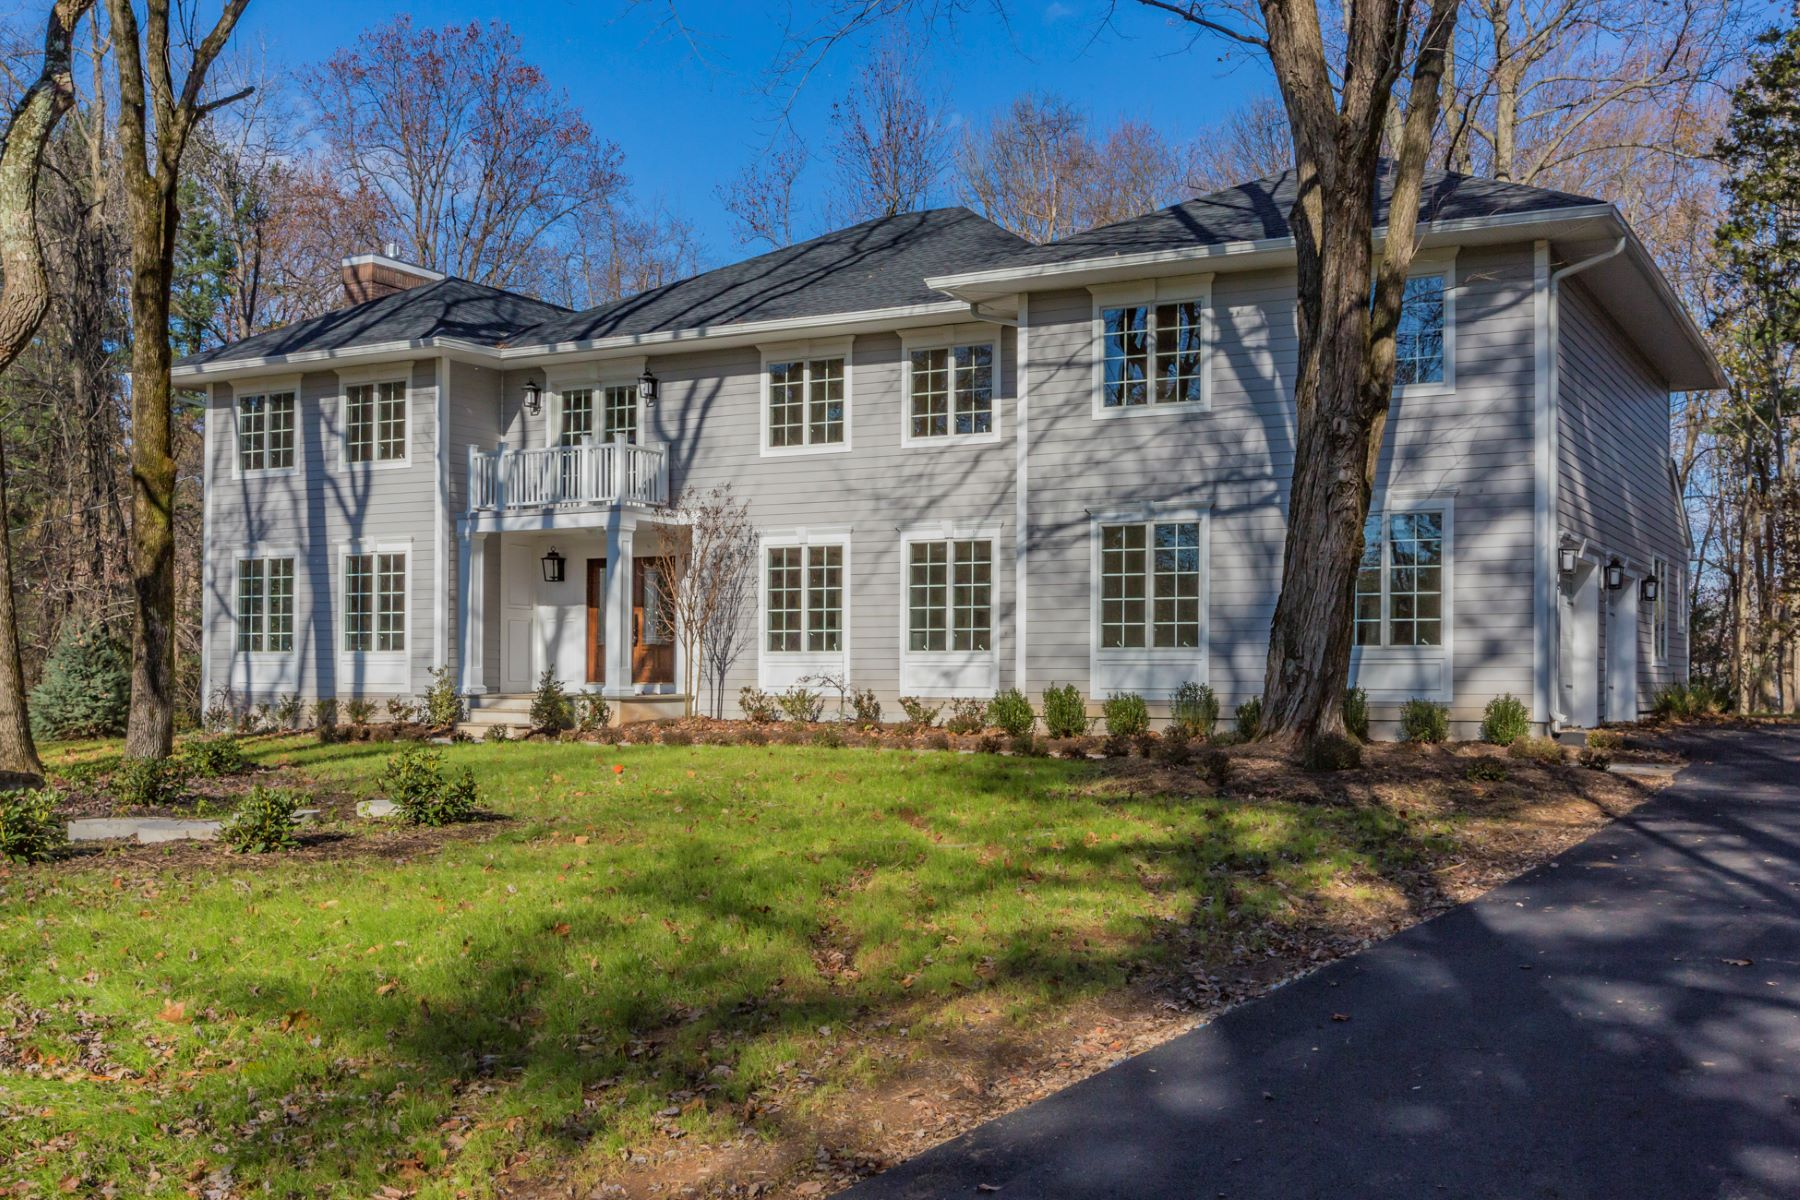 Maison unifamiliale pour l Vente à Dramatically Remodeled To The Highest Standards 1163 Great Road, Princeton, New Jersey 08540 États-UnisDans/Autour: Princeton